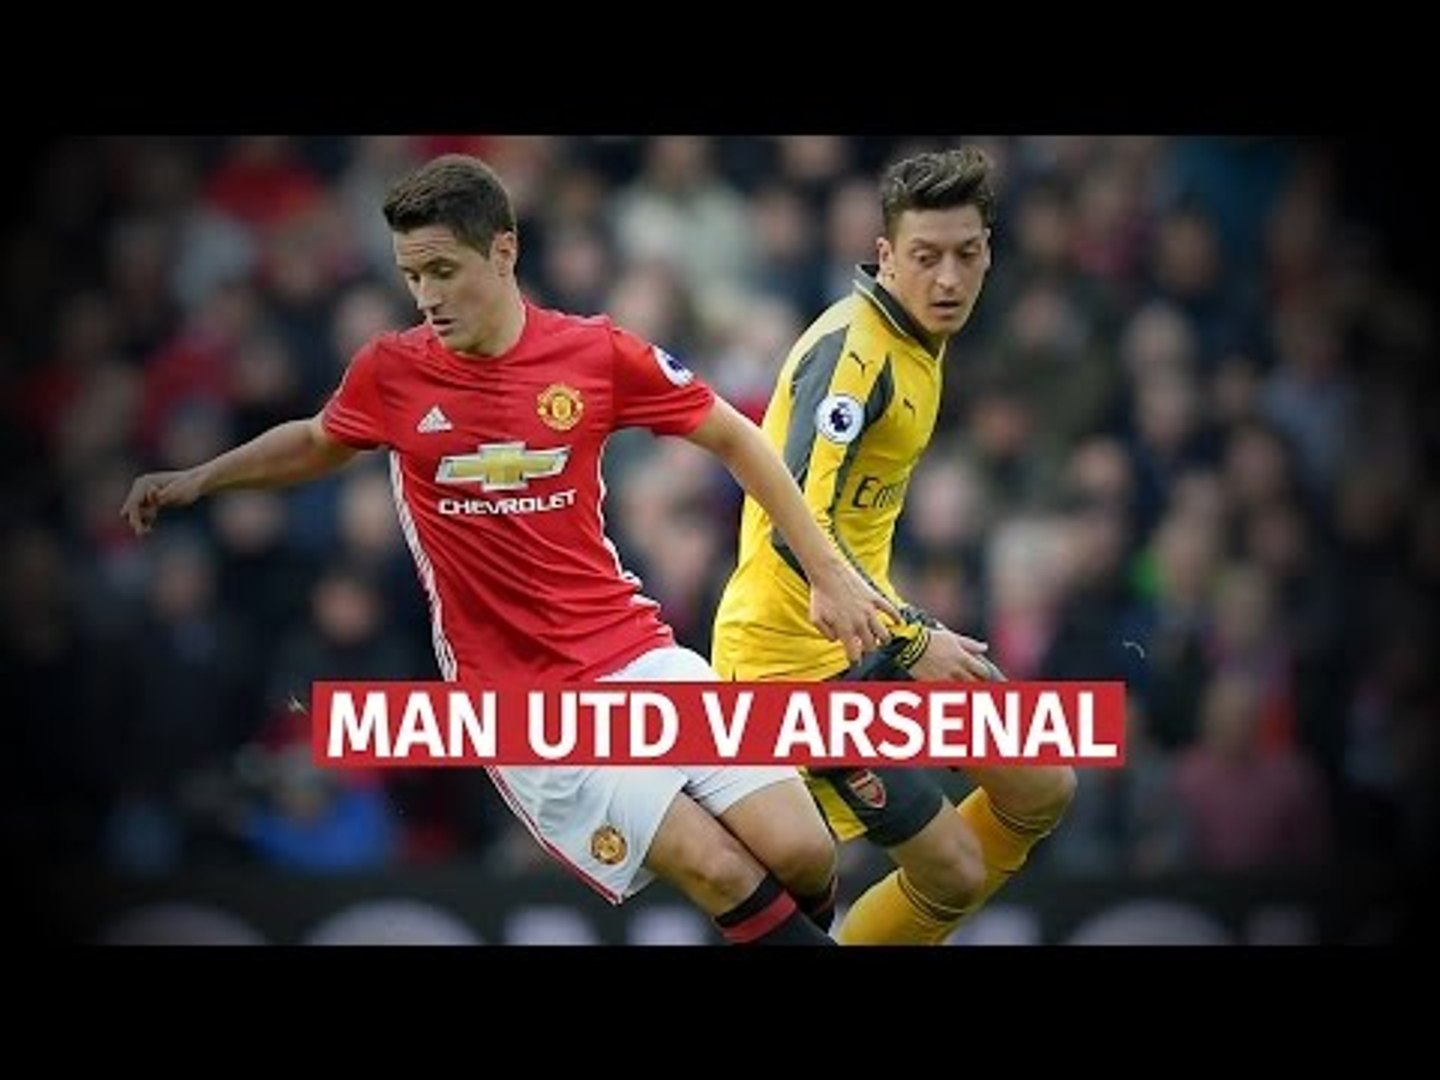 Match Report - Manchester United 1-1 Arsenal - 'Man United Are The Unluckiest Team In The Leagu